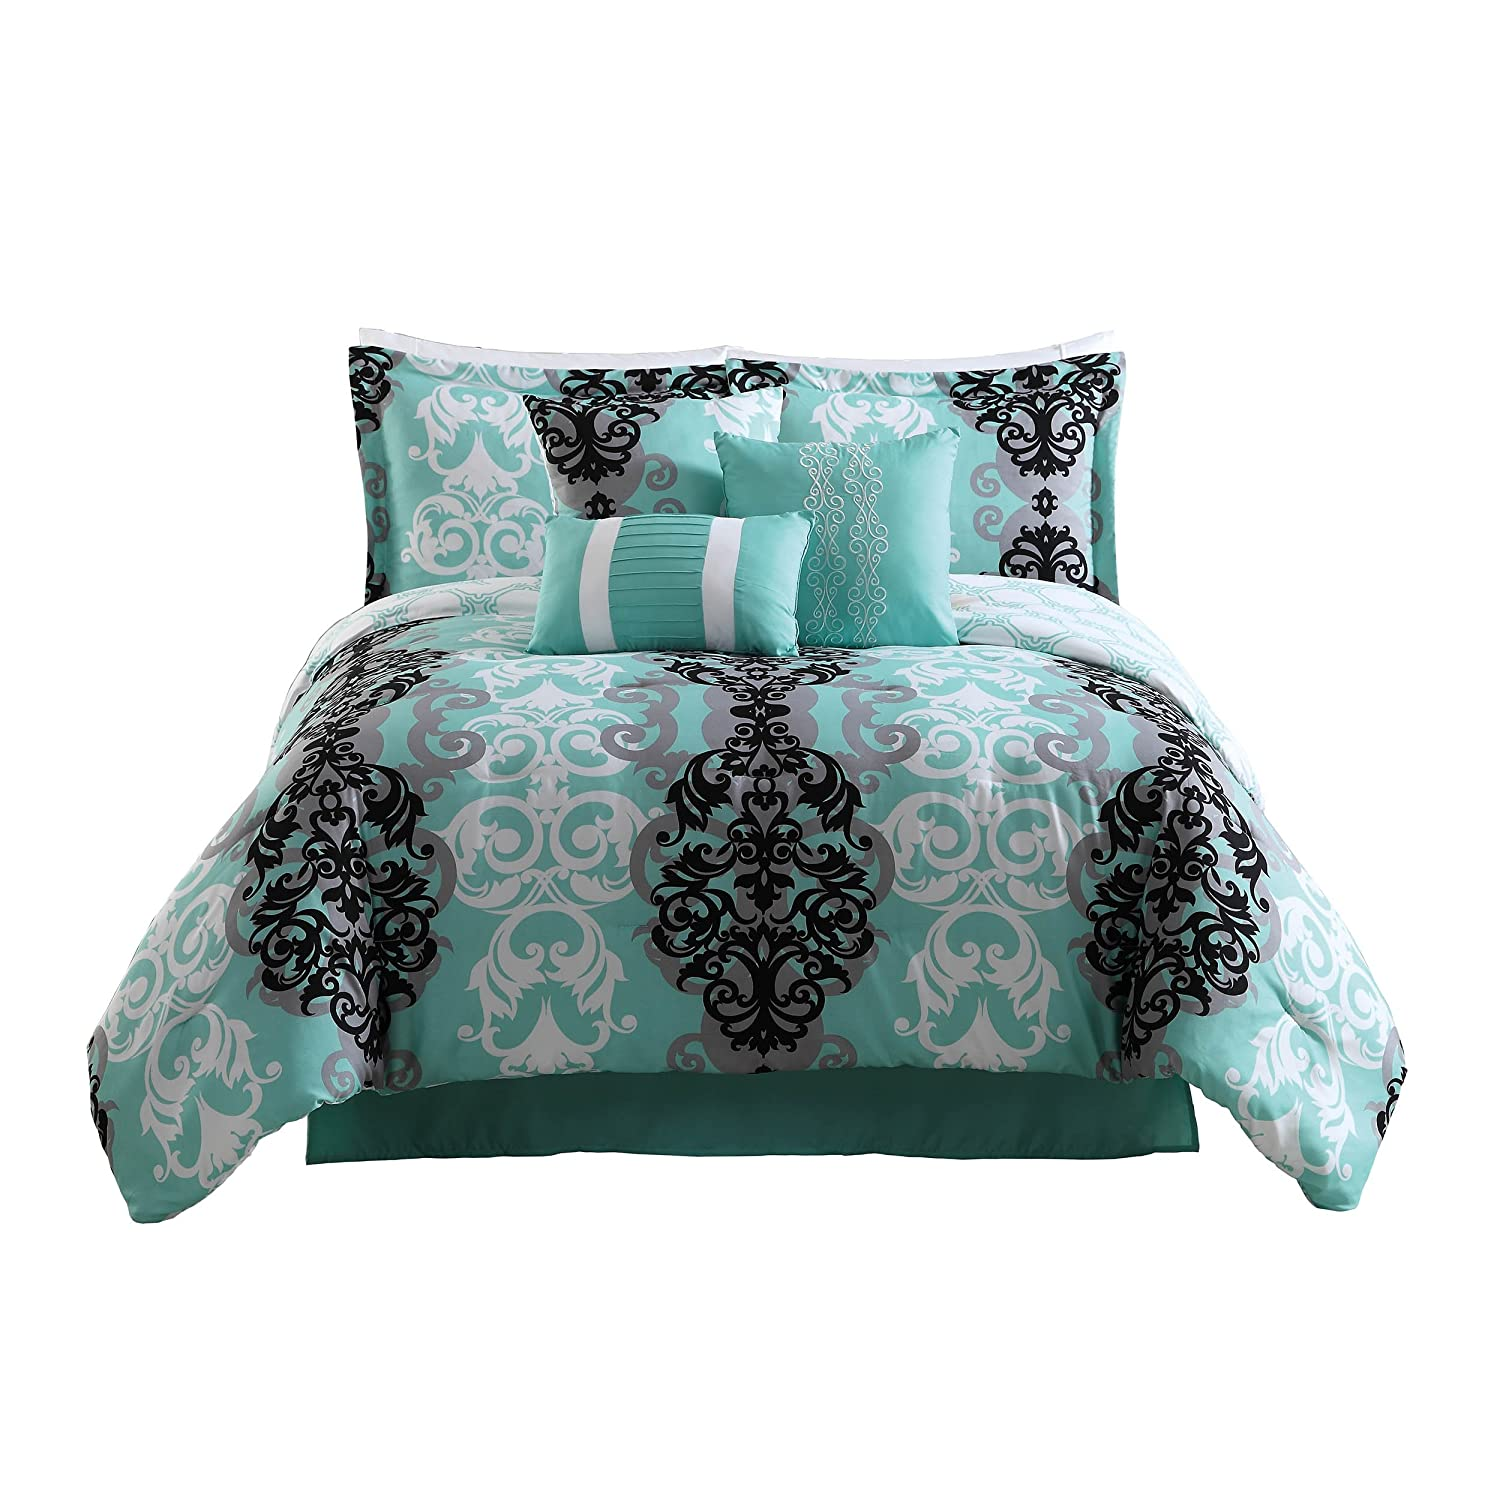 Amazoncom Carmela Home Downton Piece Reversible Comforter Set - Black and teal comforter sets